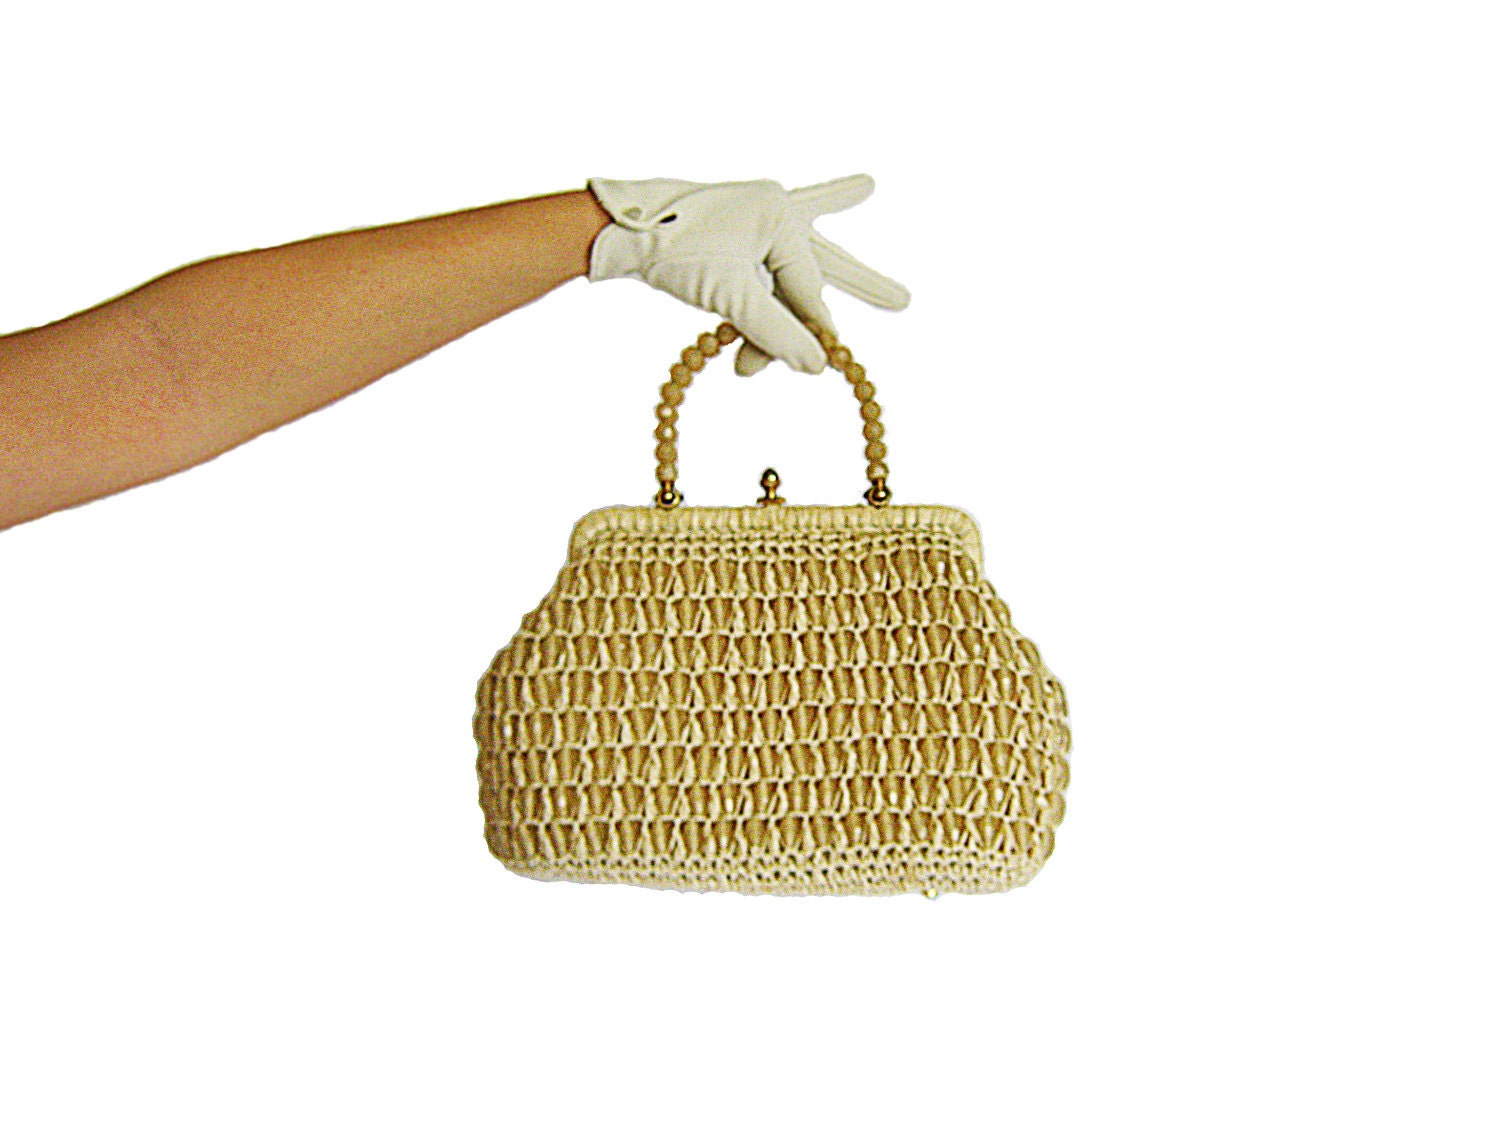 1960s Beaded Handbag / Made In Italy / Cream / Woven / Faceted Beads - CoyoteMarmalade